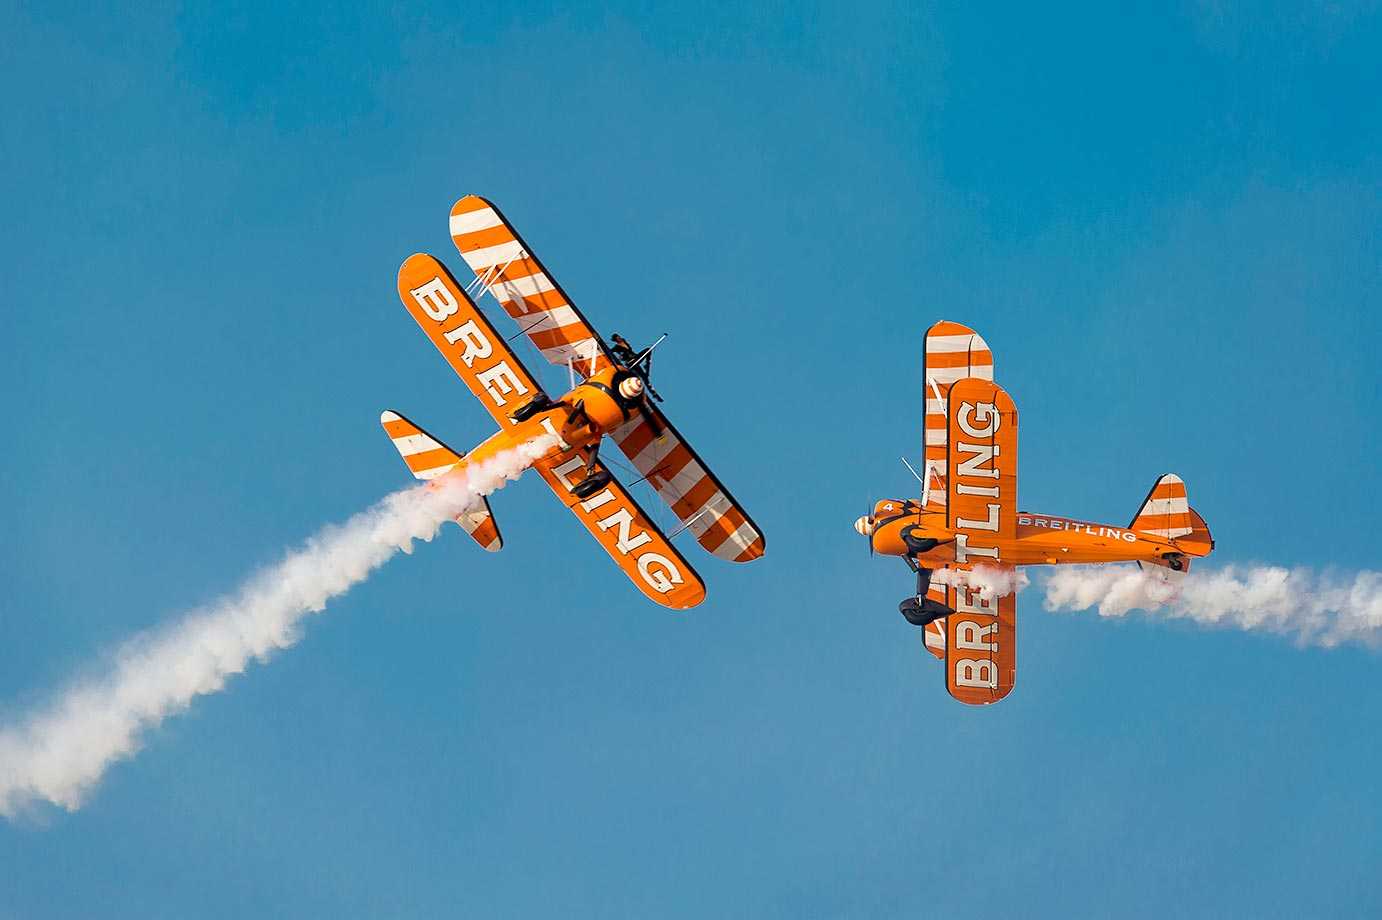 The Breitling Wingwalkers team performs aerial aerobatic formations with Boeing Stearman biplanes during the Dubai Airshow.